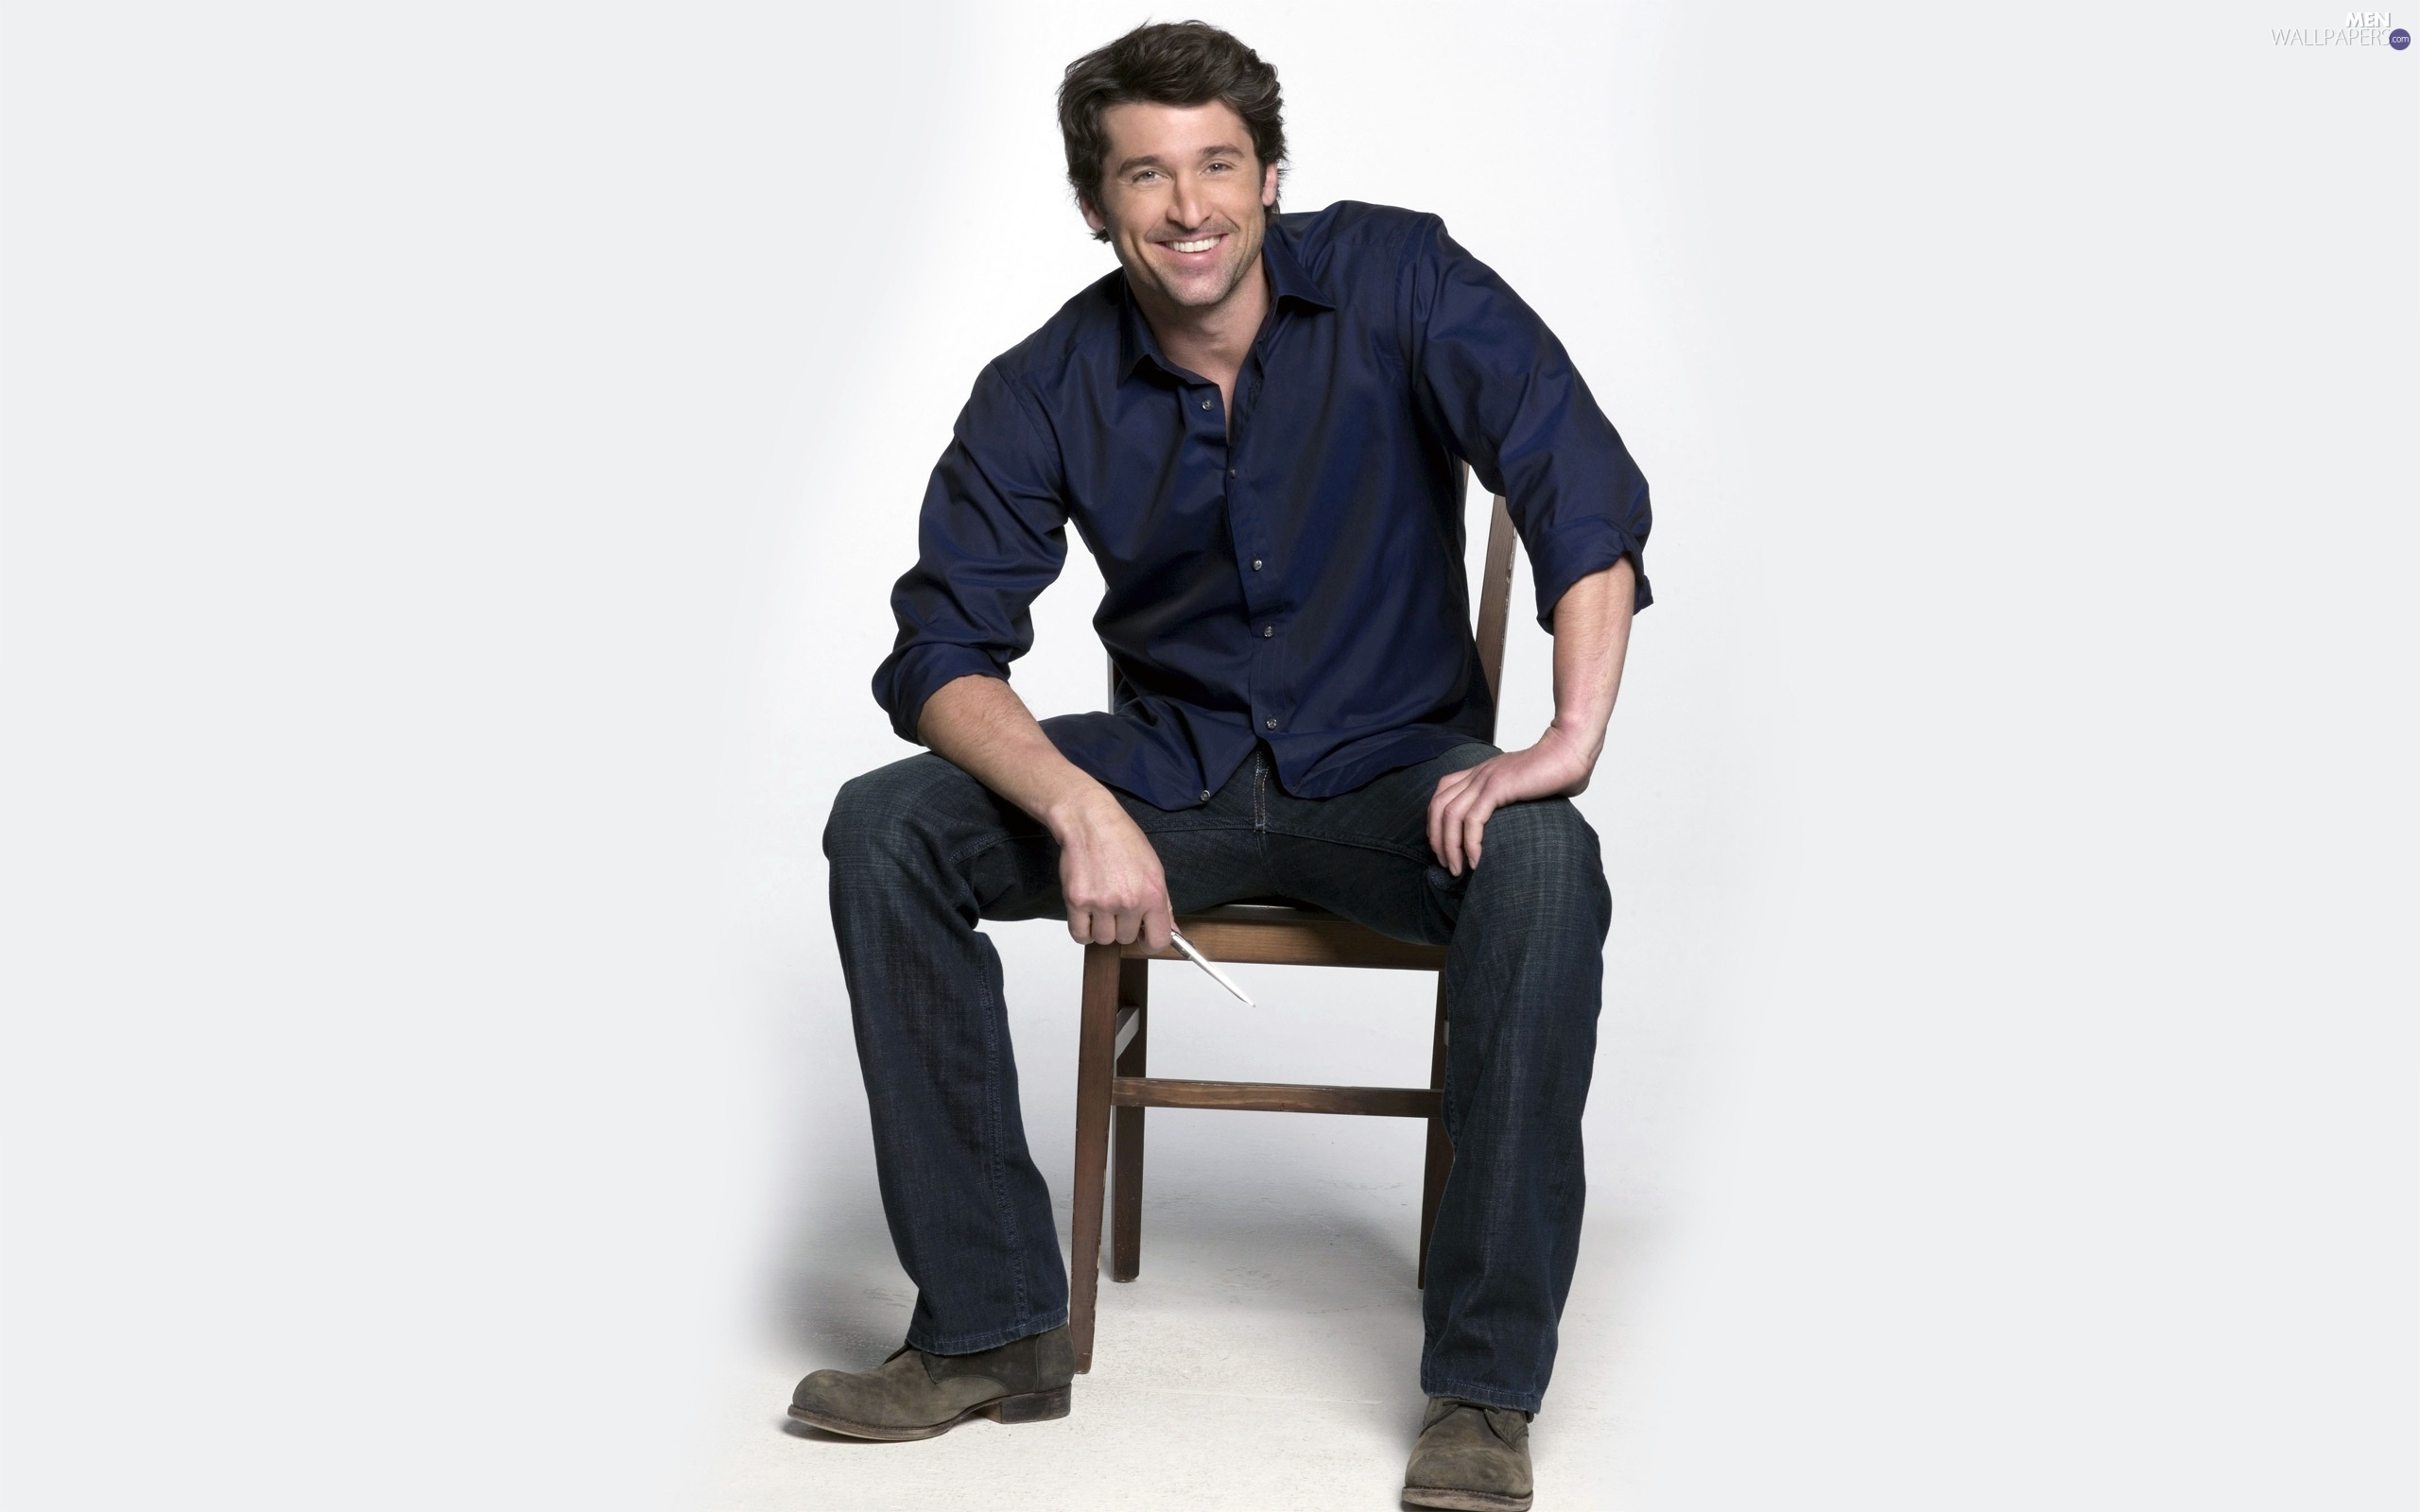 Blue, shirt, actor, Chair, Patrick Dempsey